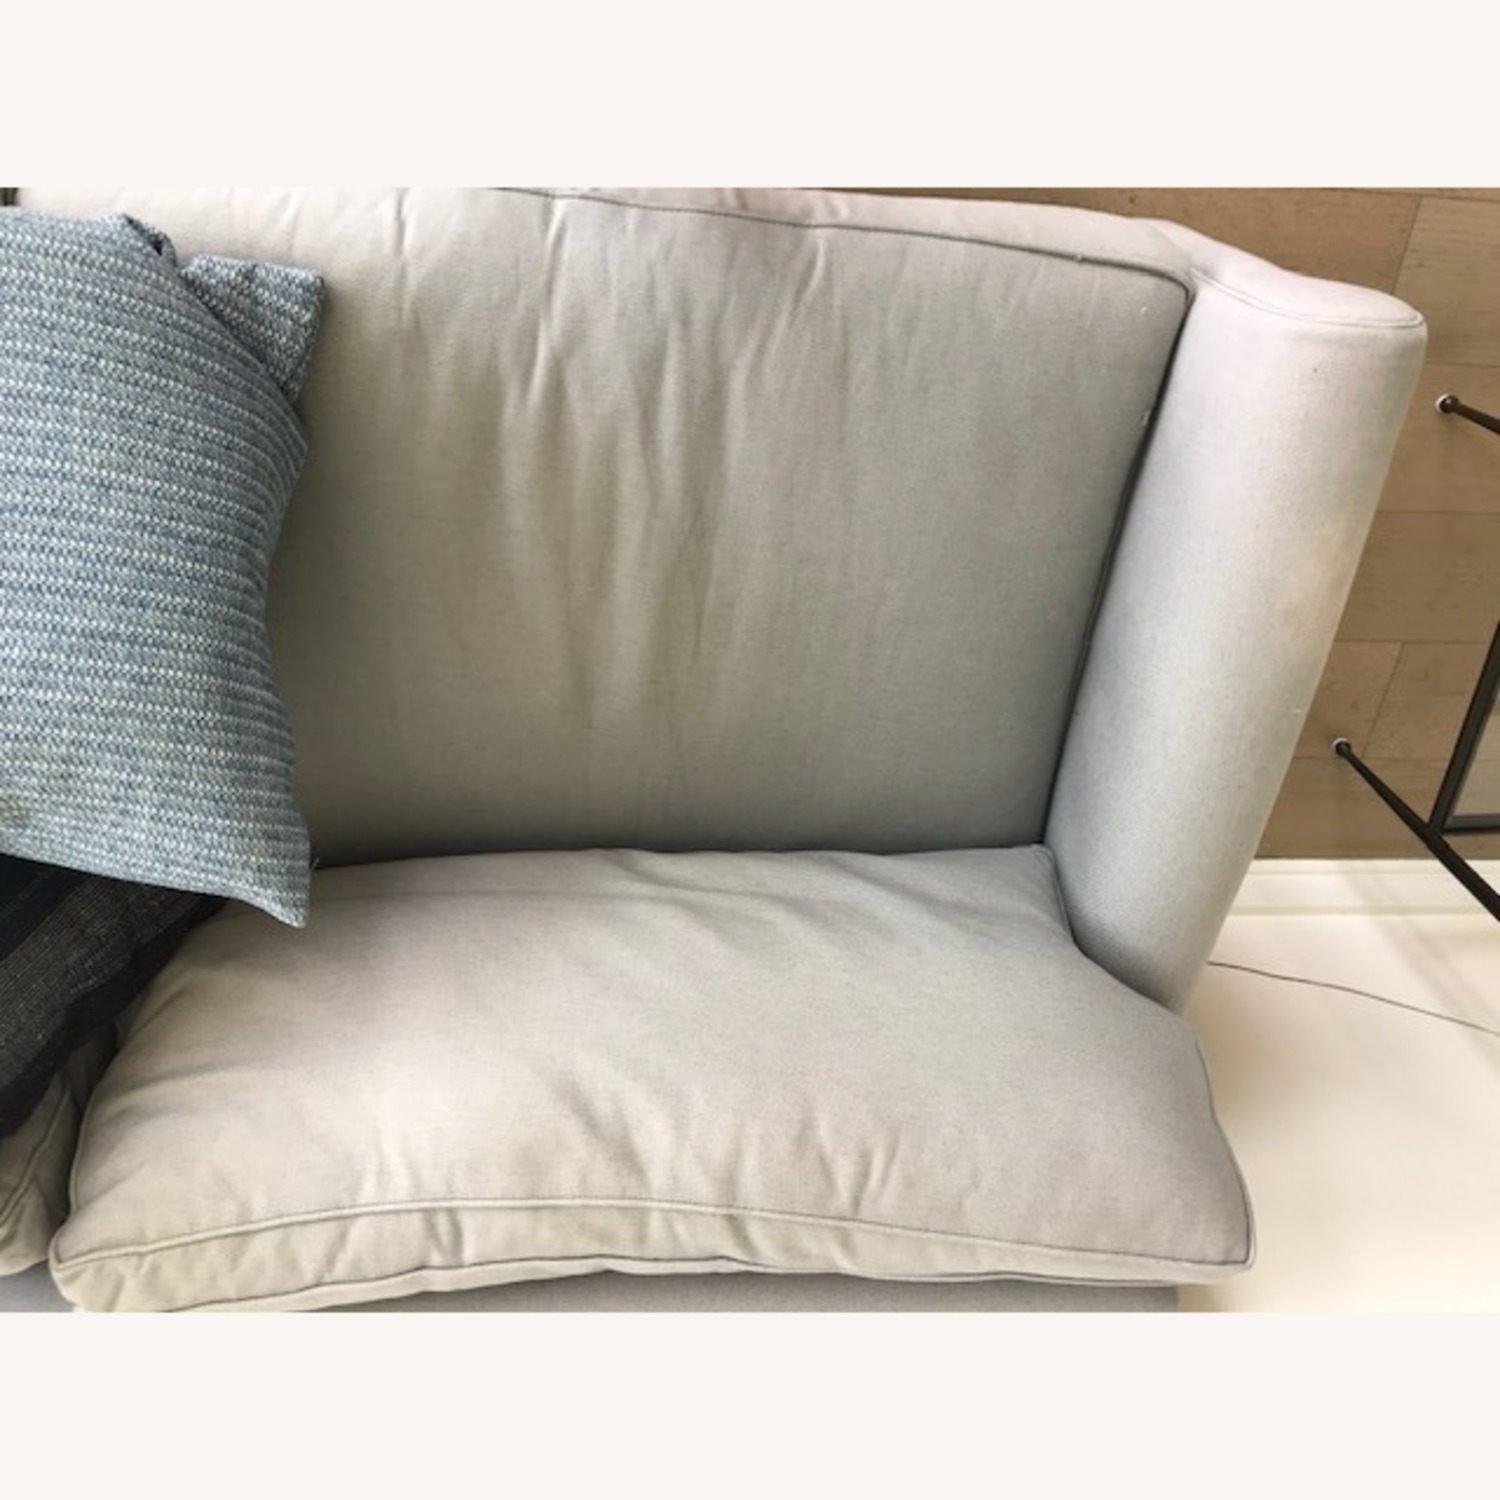 Crate & Barrel Montclair Sofa - image-6